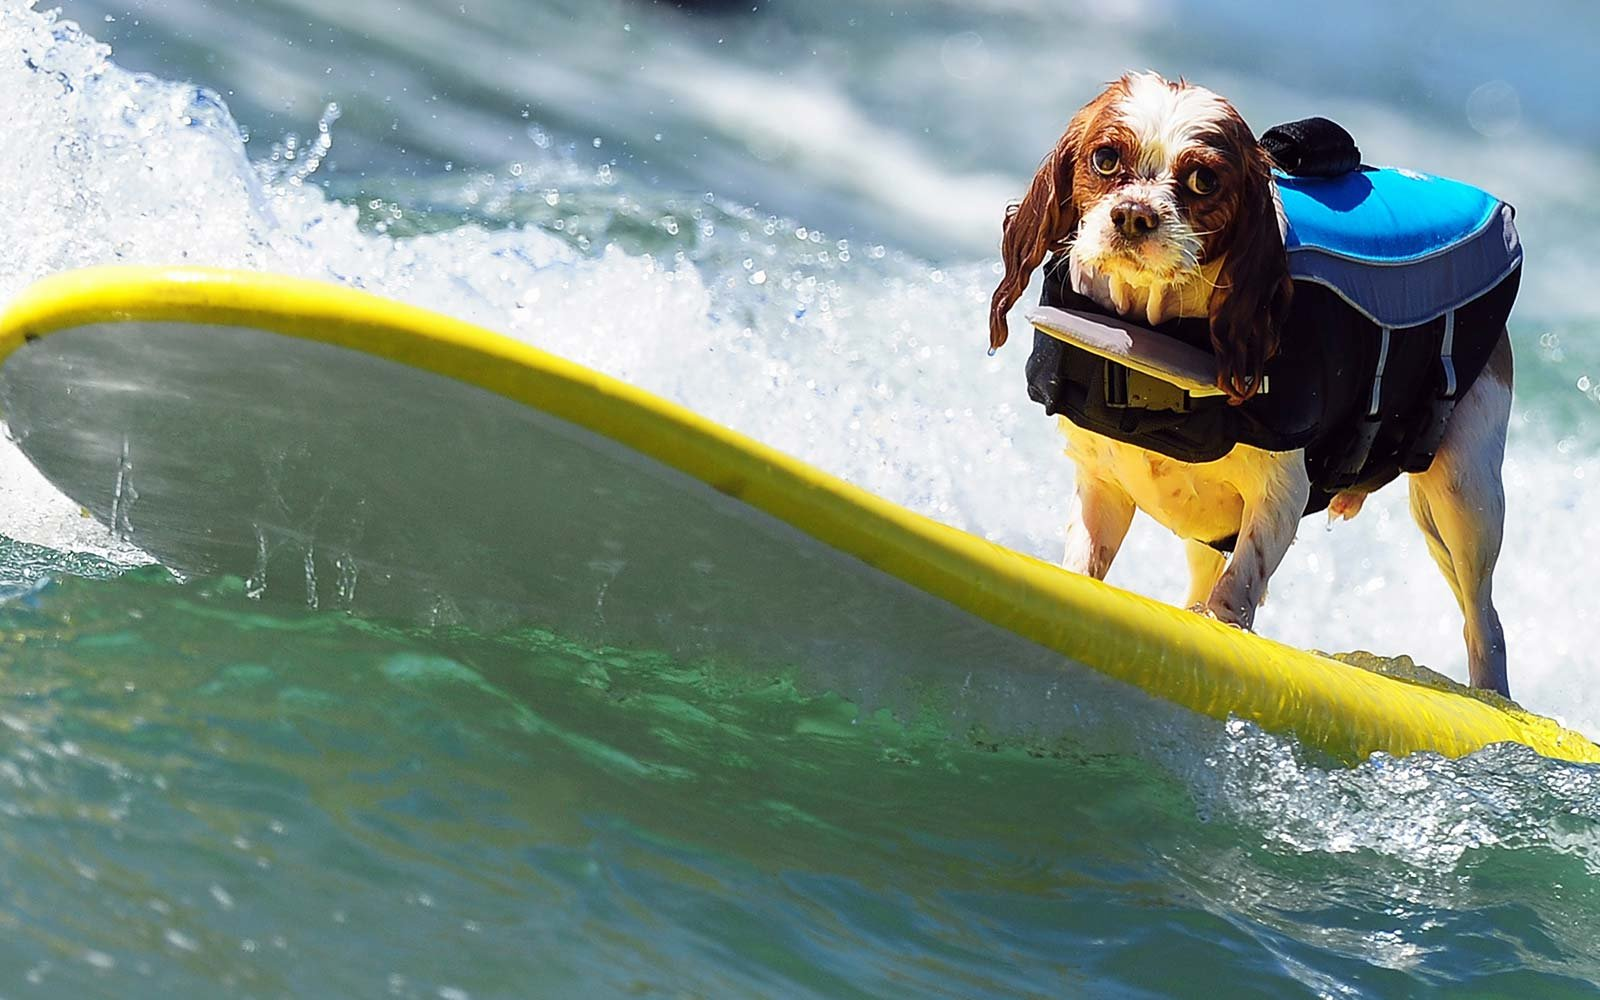 A dog rides a wave while competing during the Dog Surfing competition Championship at Beach, California